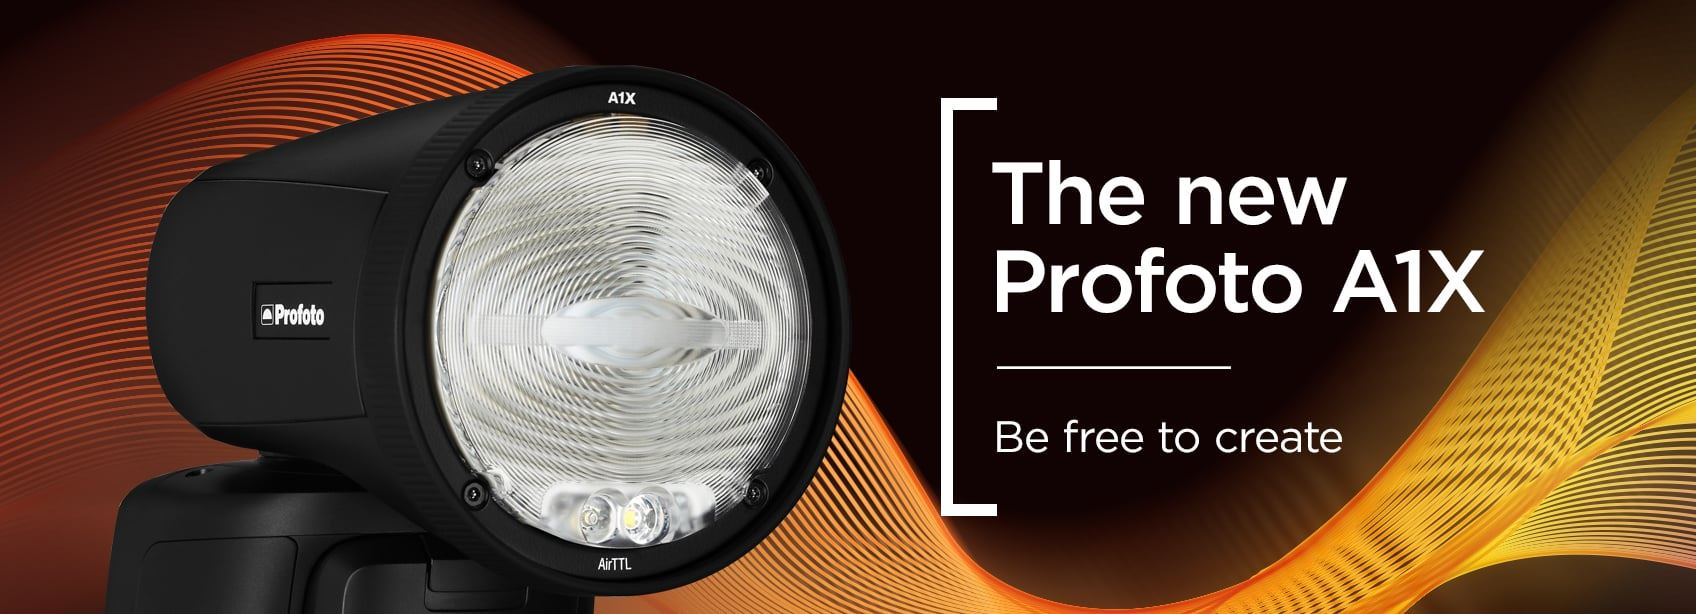 Launching Today! The Profoto A1X